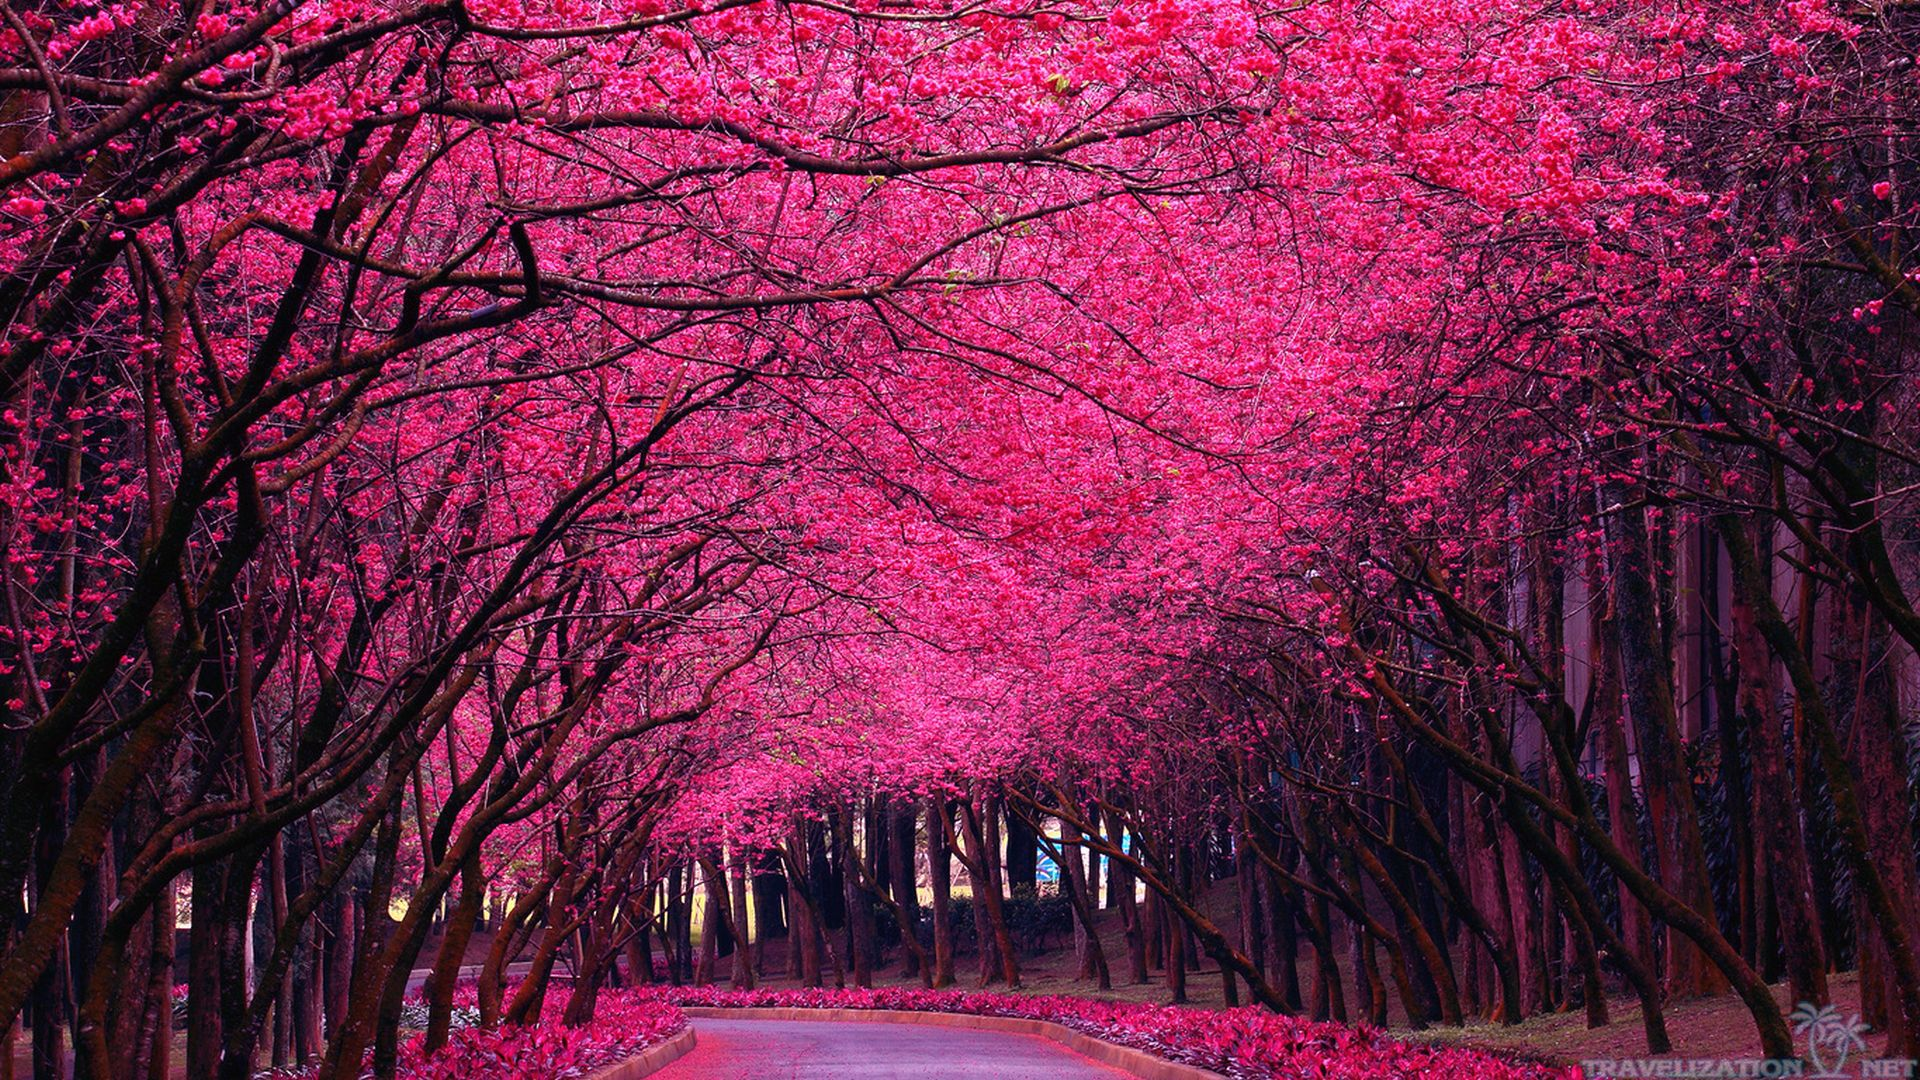 bright-pink-trees-spring-blooming-wallpapers-1920x1080.jpg